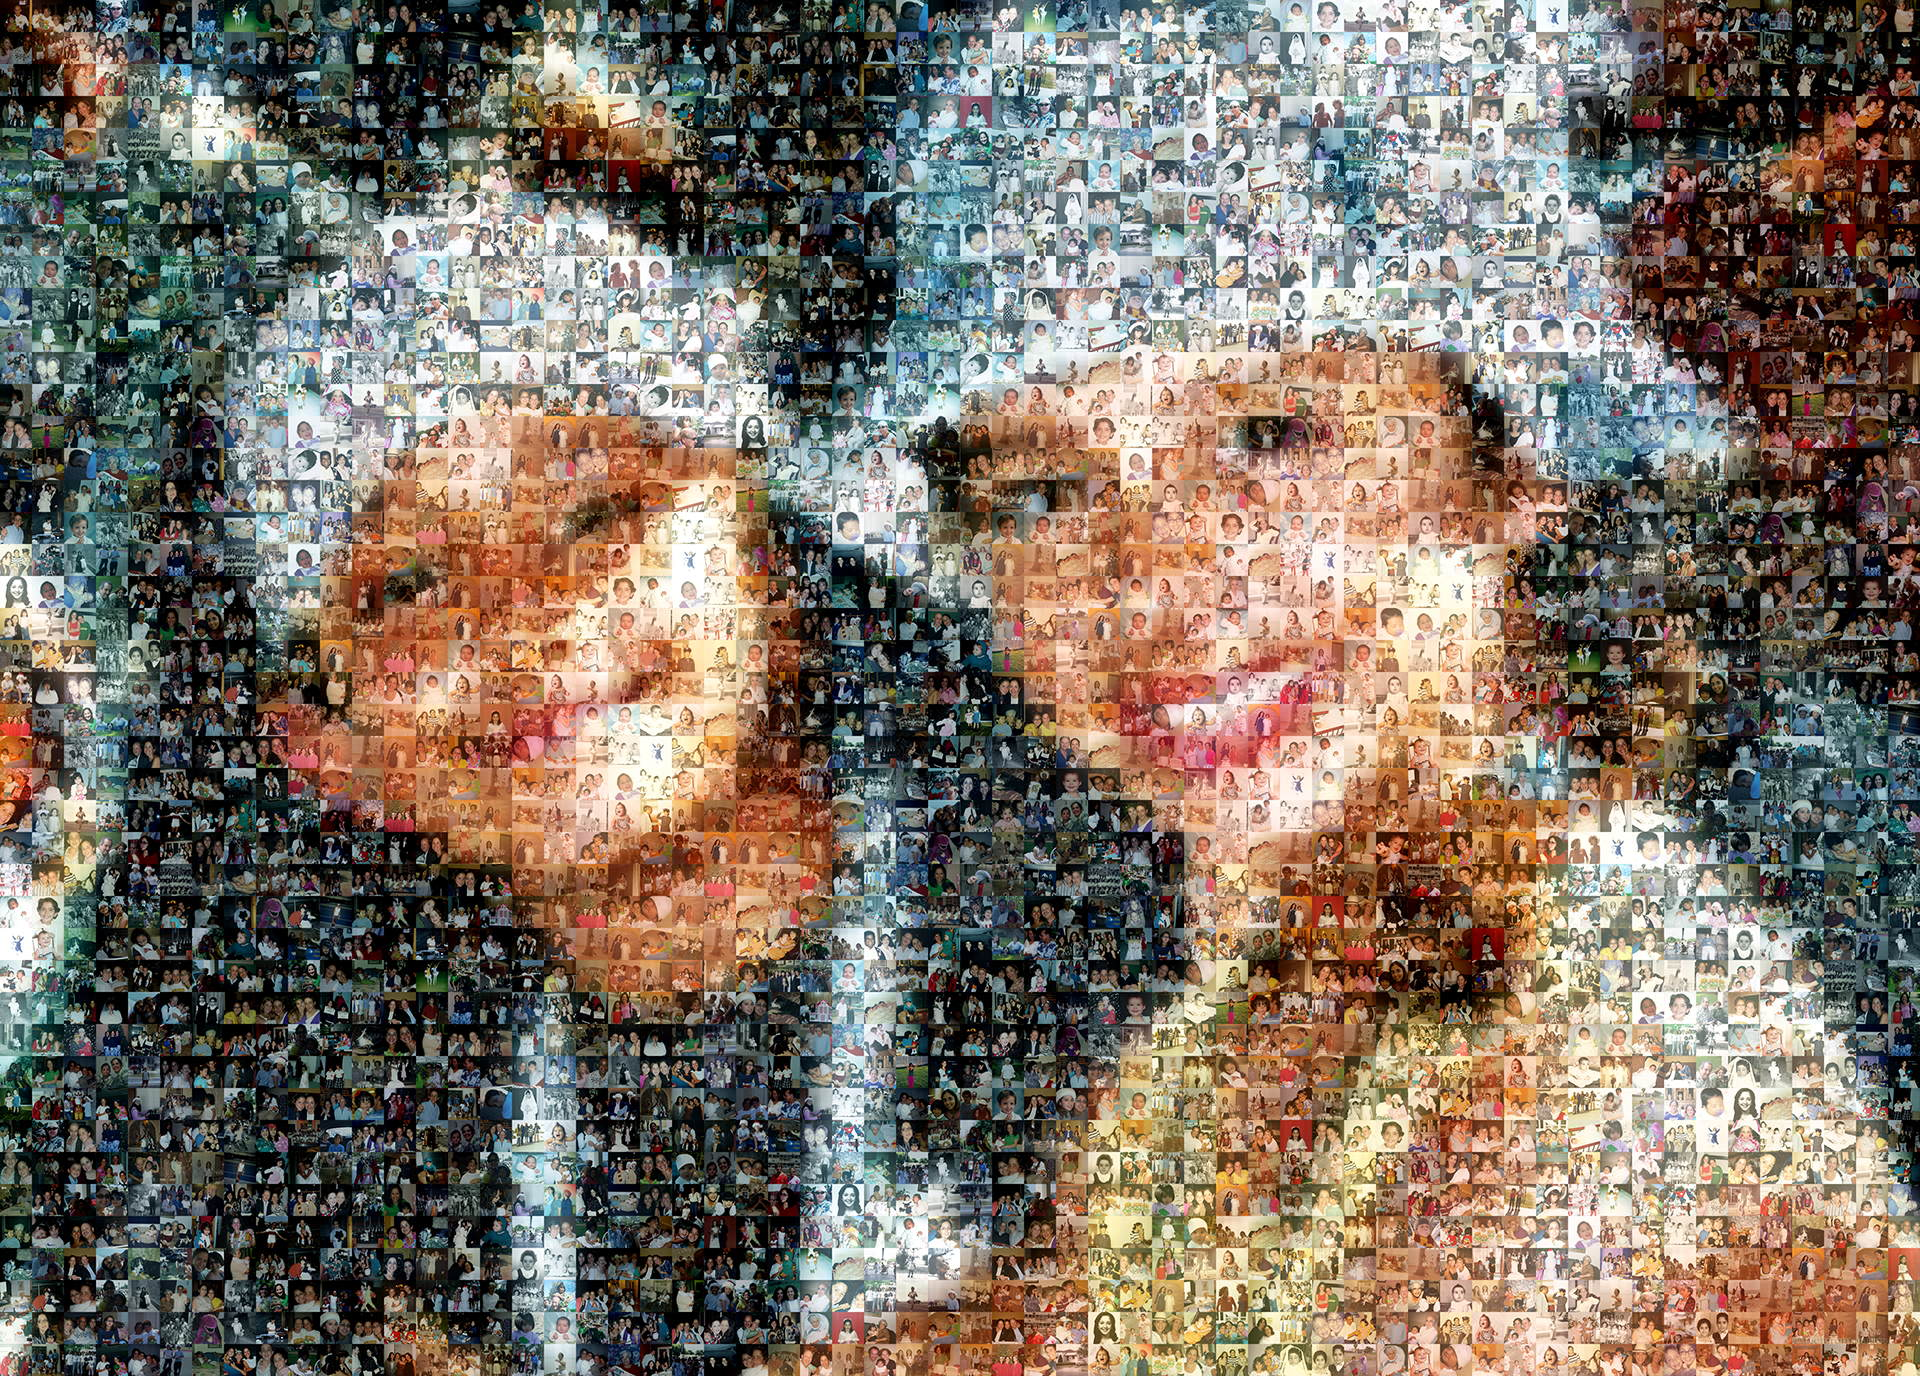 photo mosaic created using 484 customer selected photos